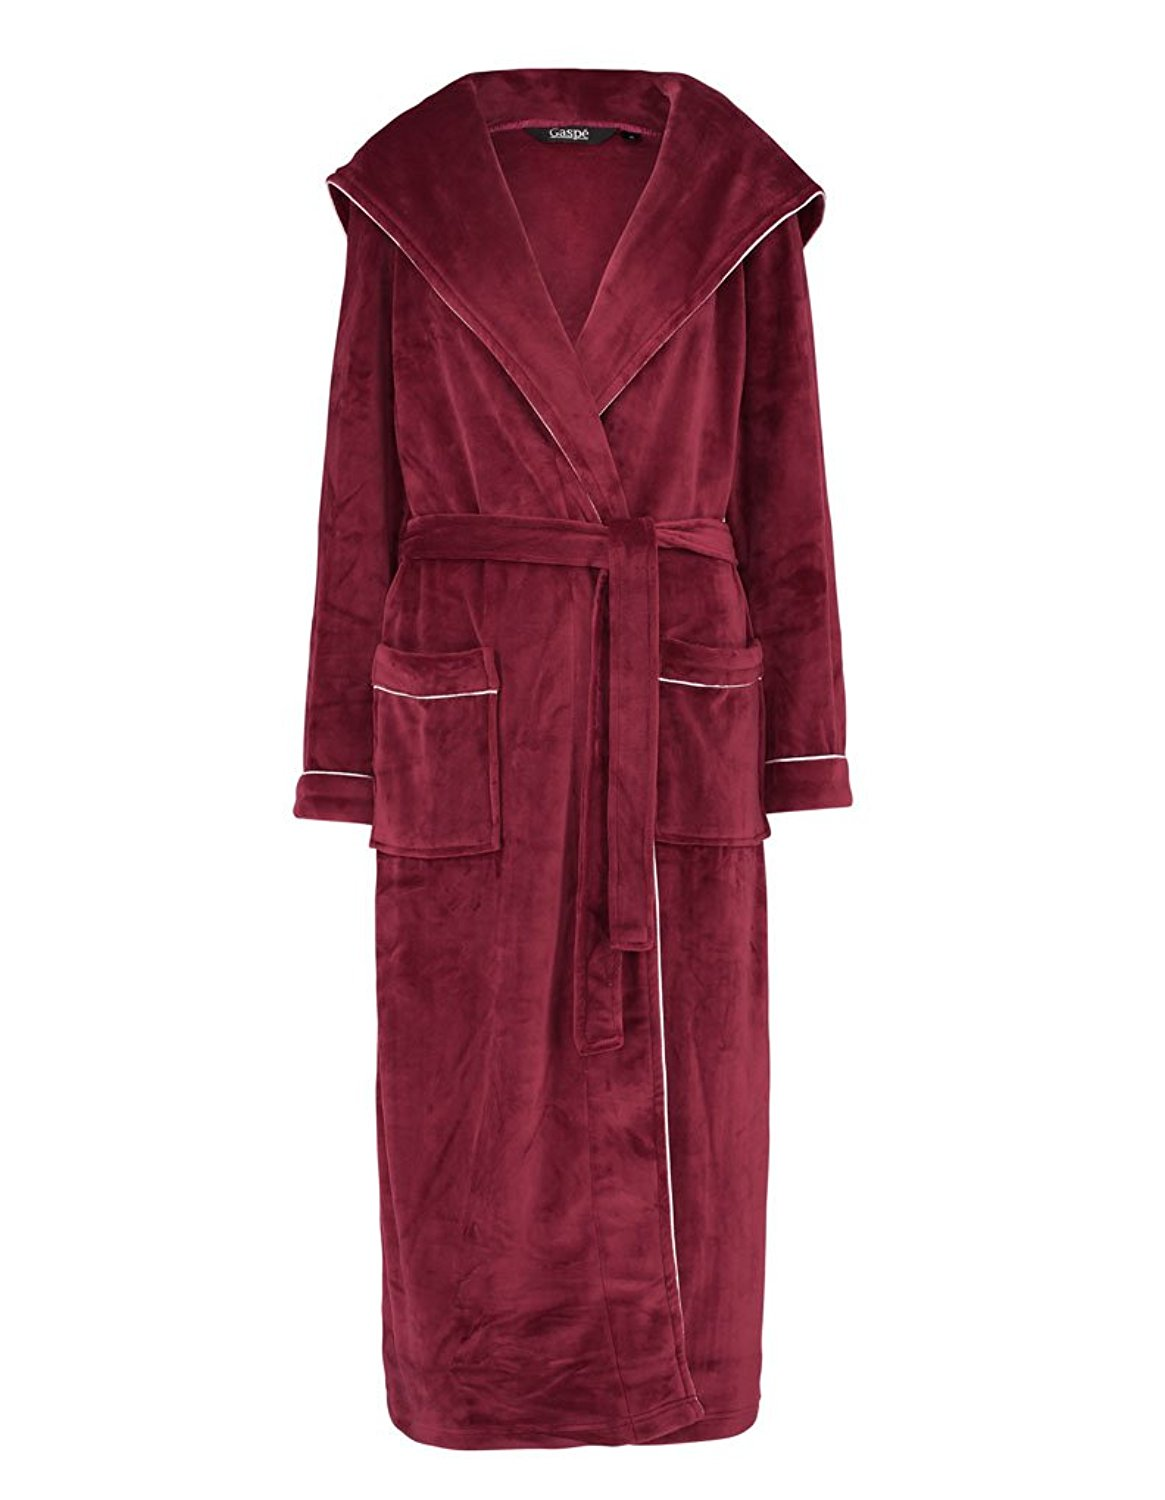 327d3d745d13 Get Quotations · Slenderella GL8746 Women s Rasberry Red Long Sleeve Dressing  Gown Robe